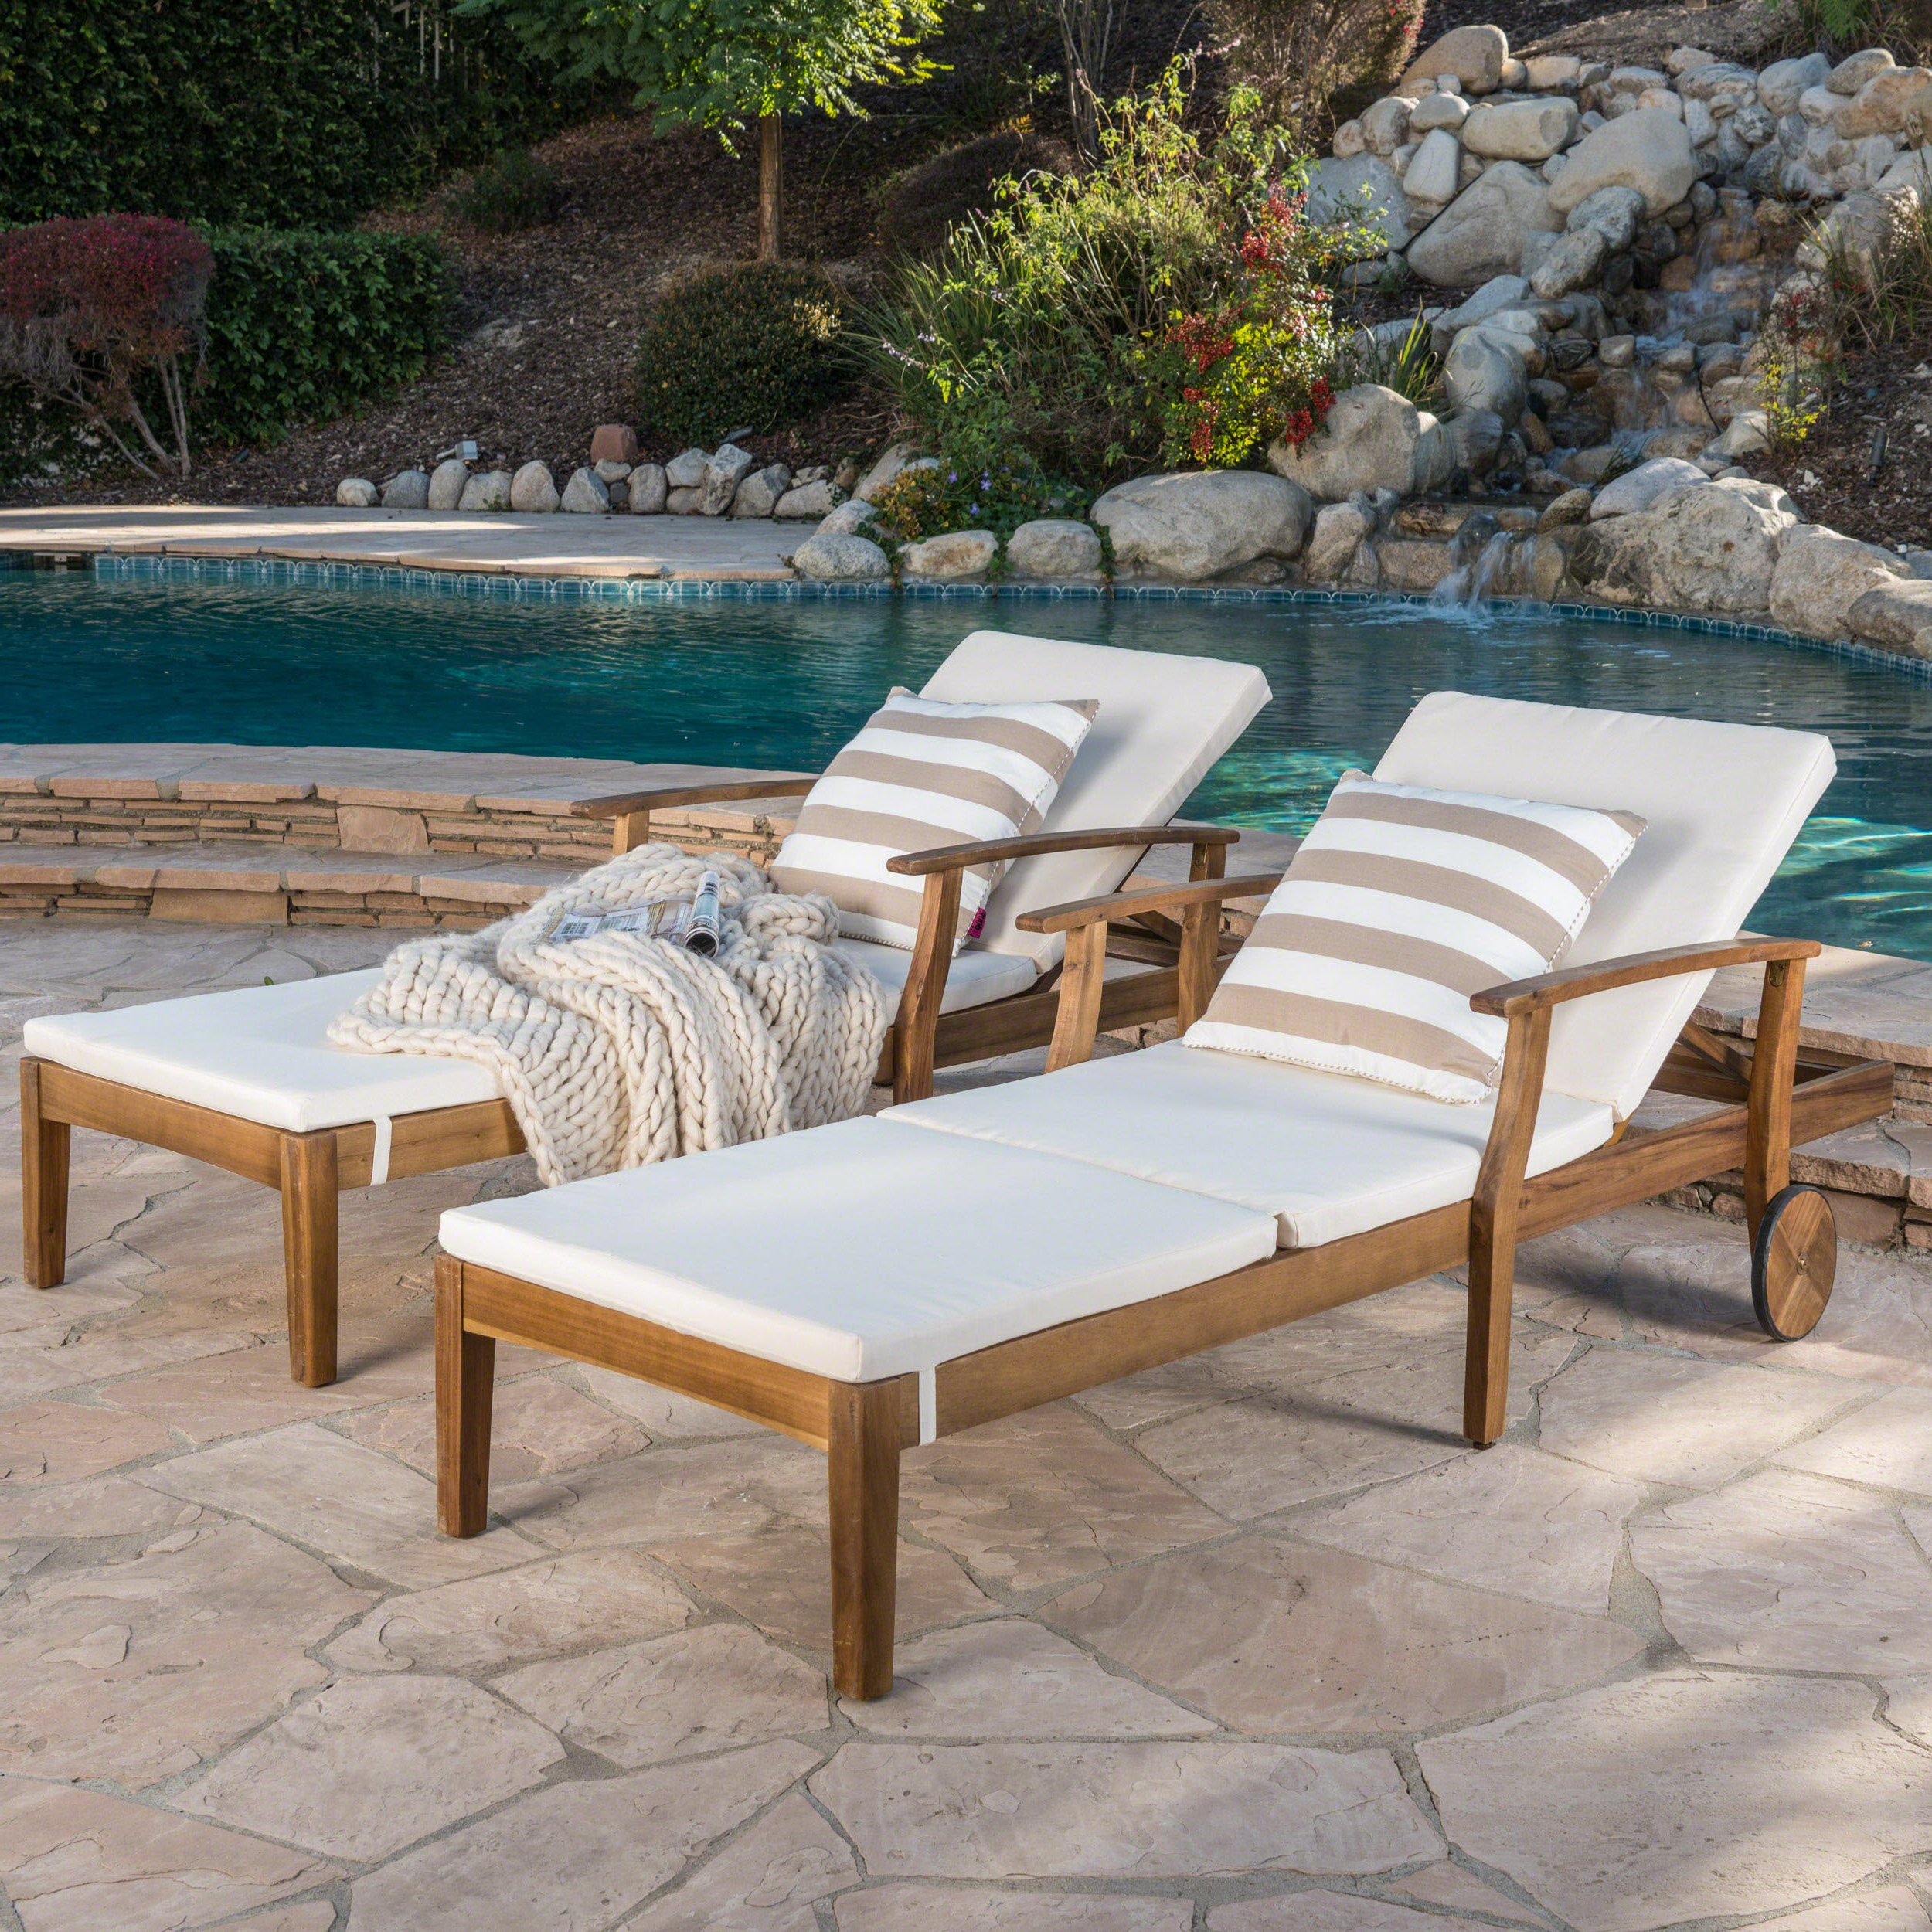 Perla Outdoor Acacia Wood Chaise Lounge With Cushion (Set Of 2) Christopher Knight Home Within Fashionable Outdoor 3 Piece Acacia Wood Chaise Lounge Sets (View 7 of 25)